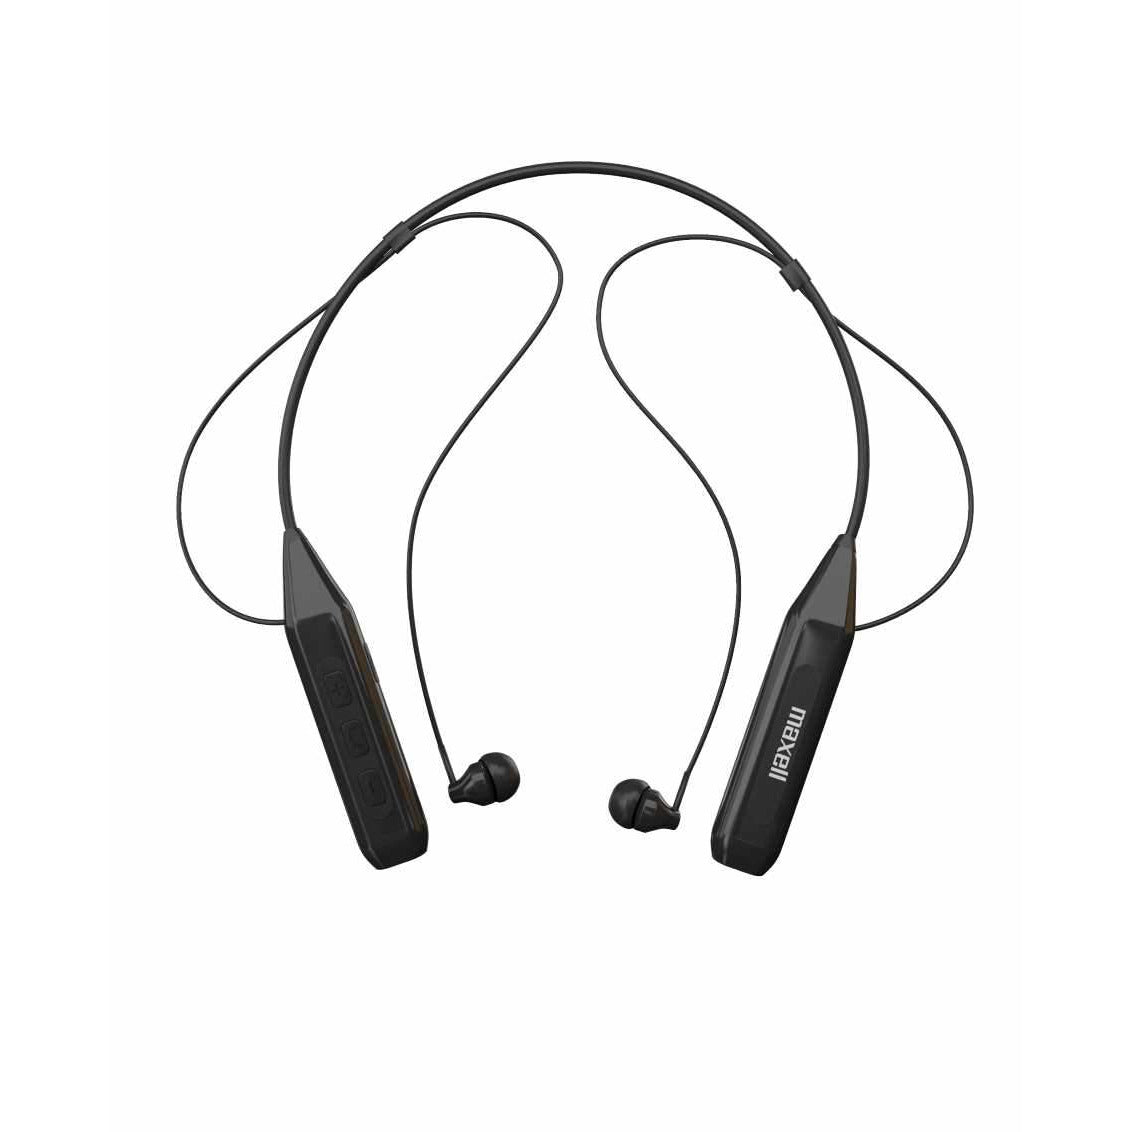 Maxell BT Neckband Earphones Black [Accessories]